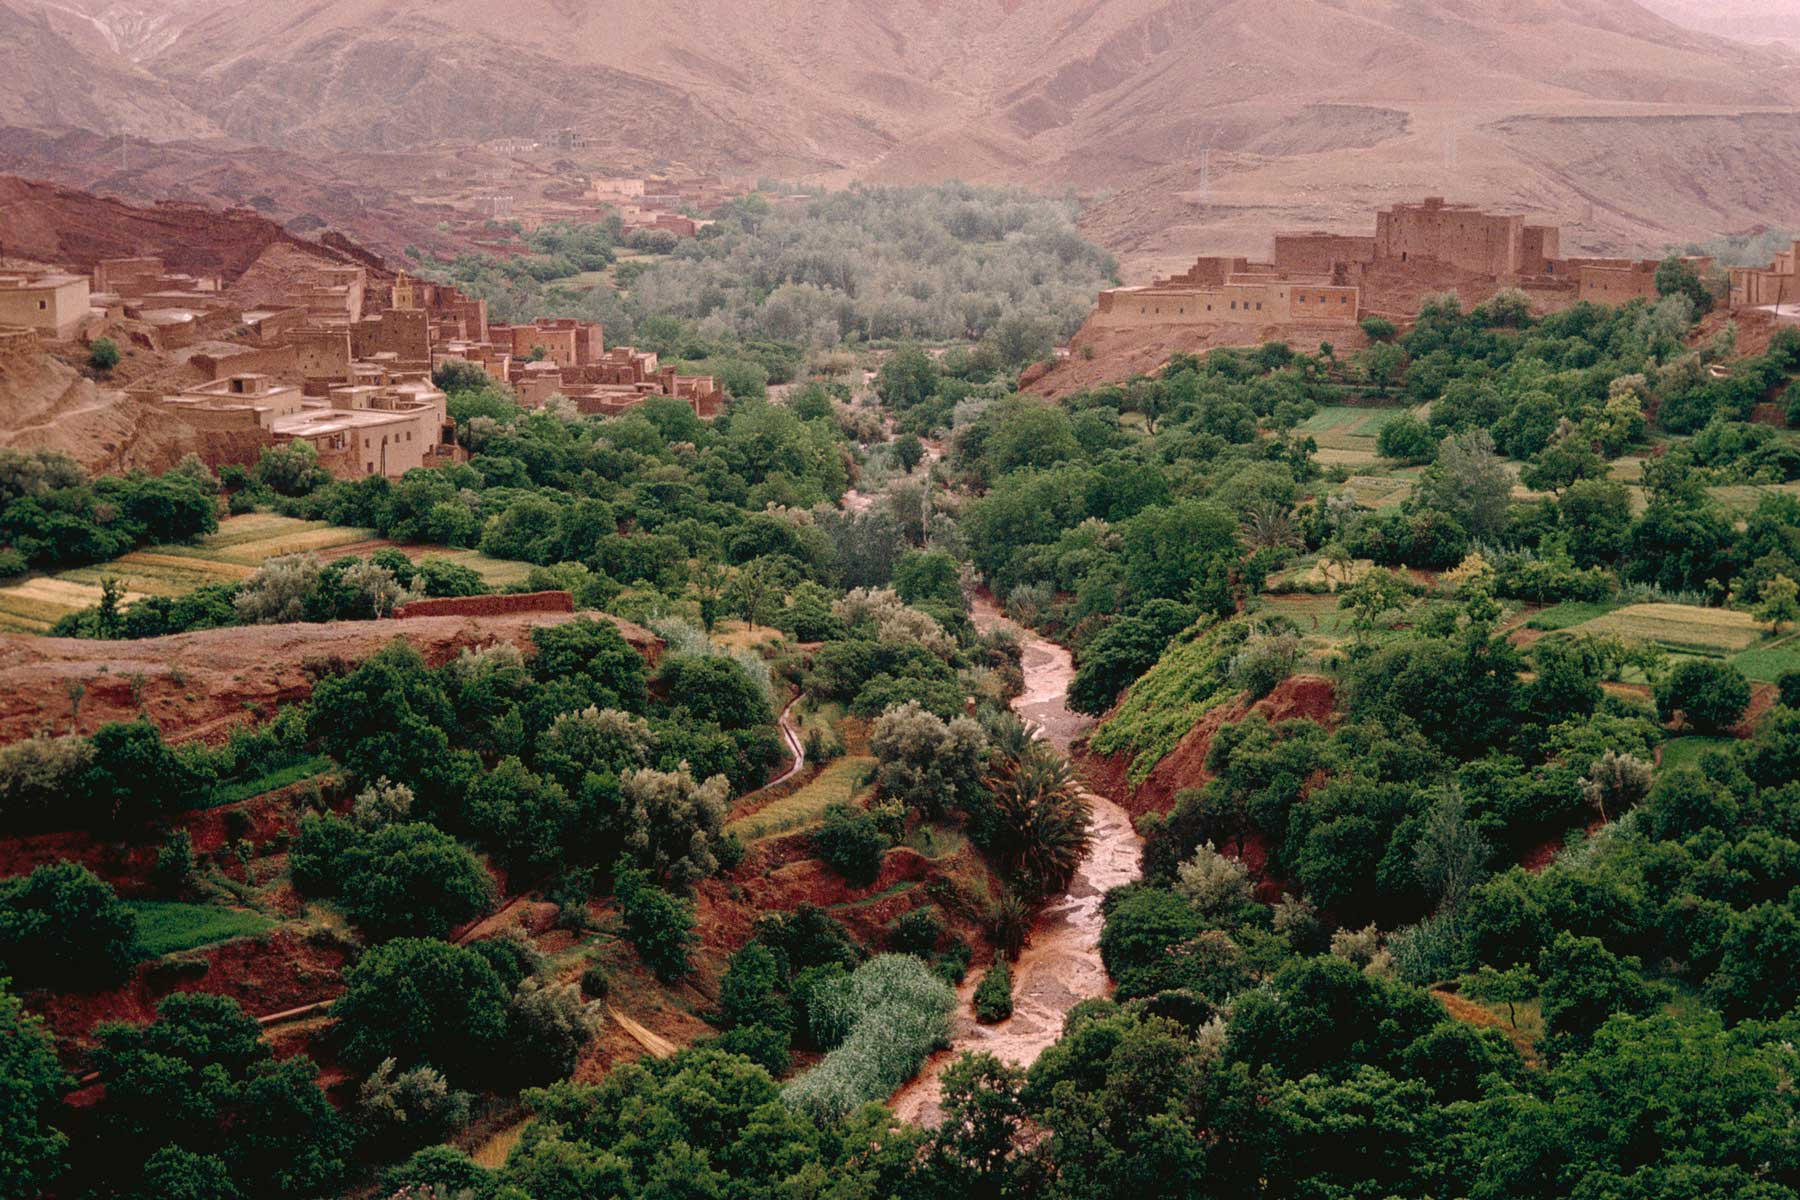 River Valley of Meknes in Morocco